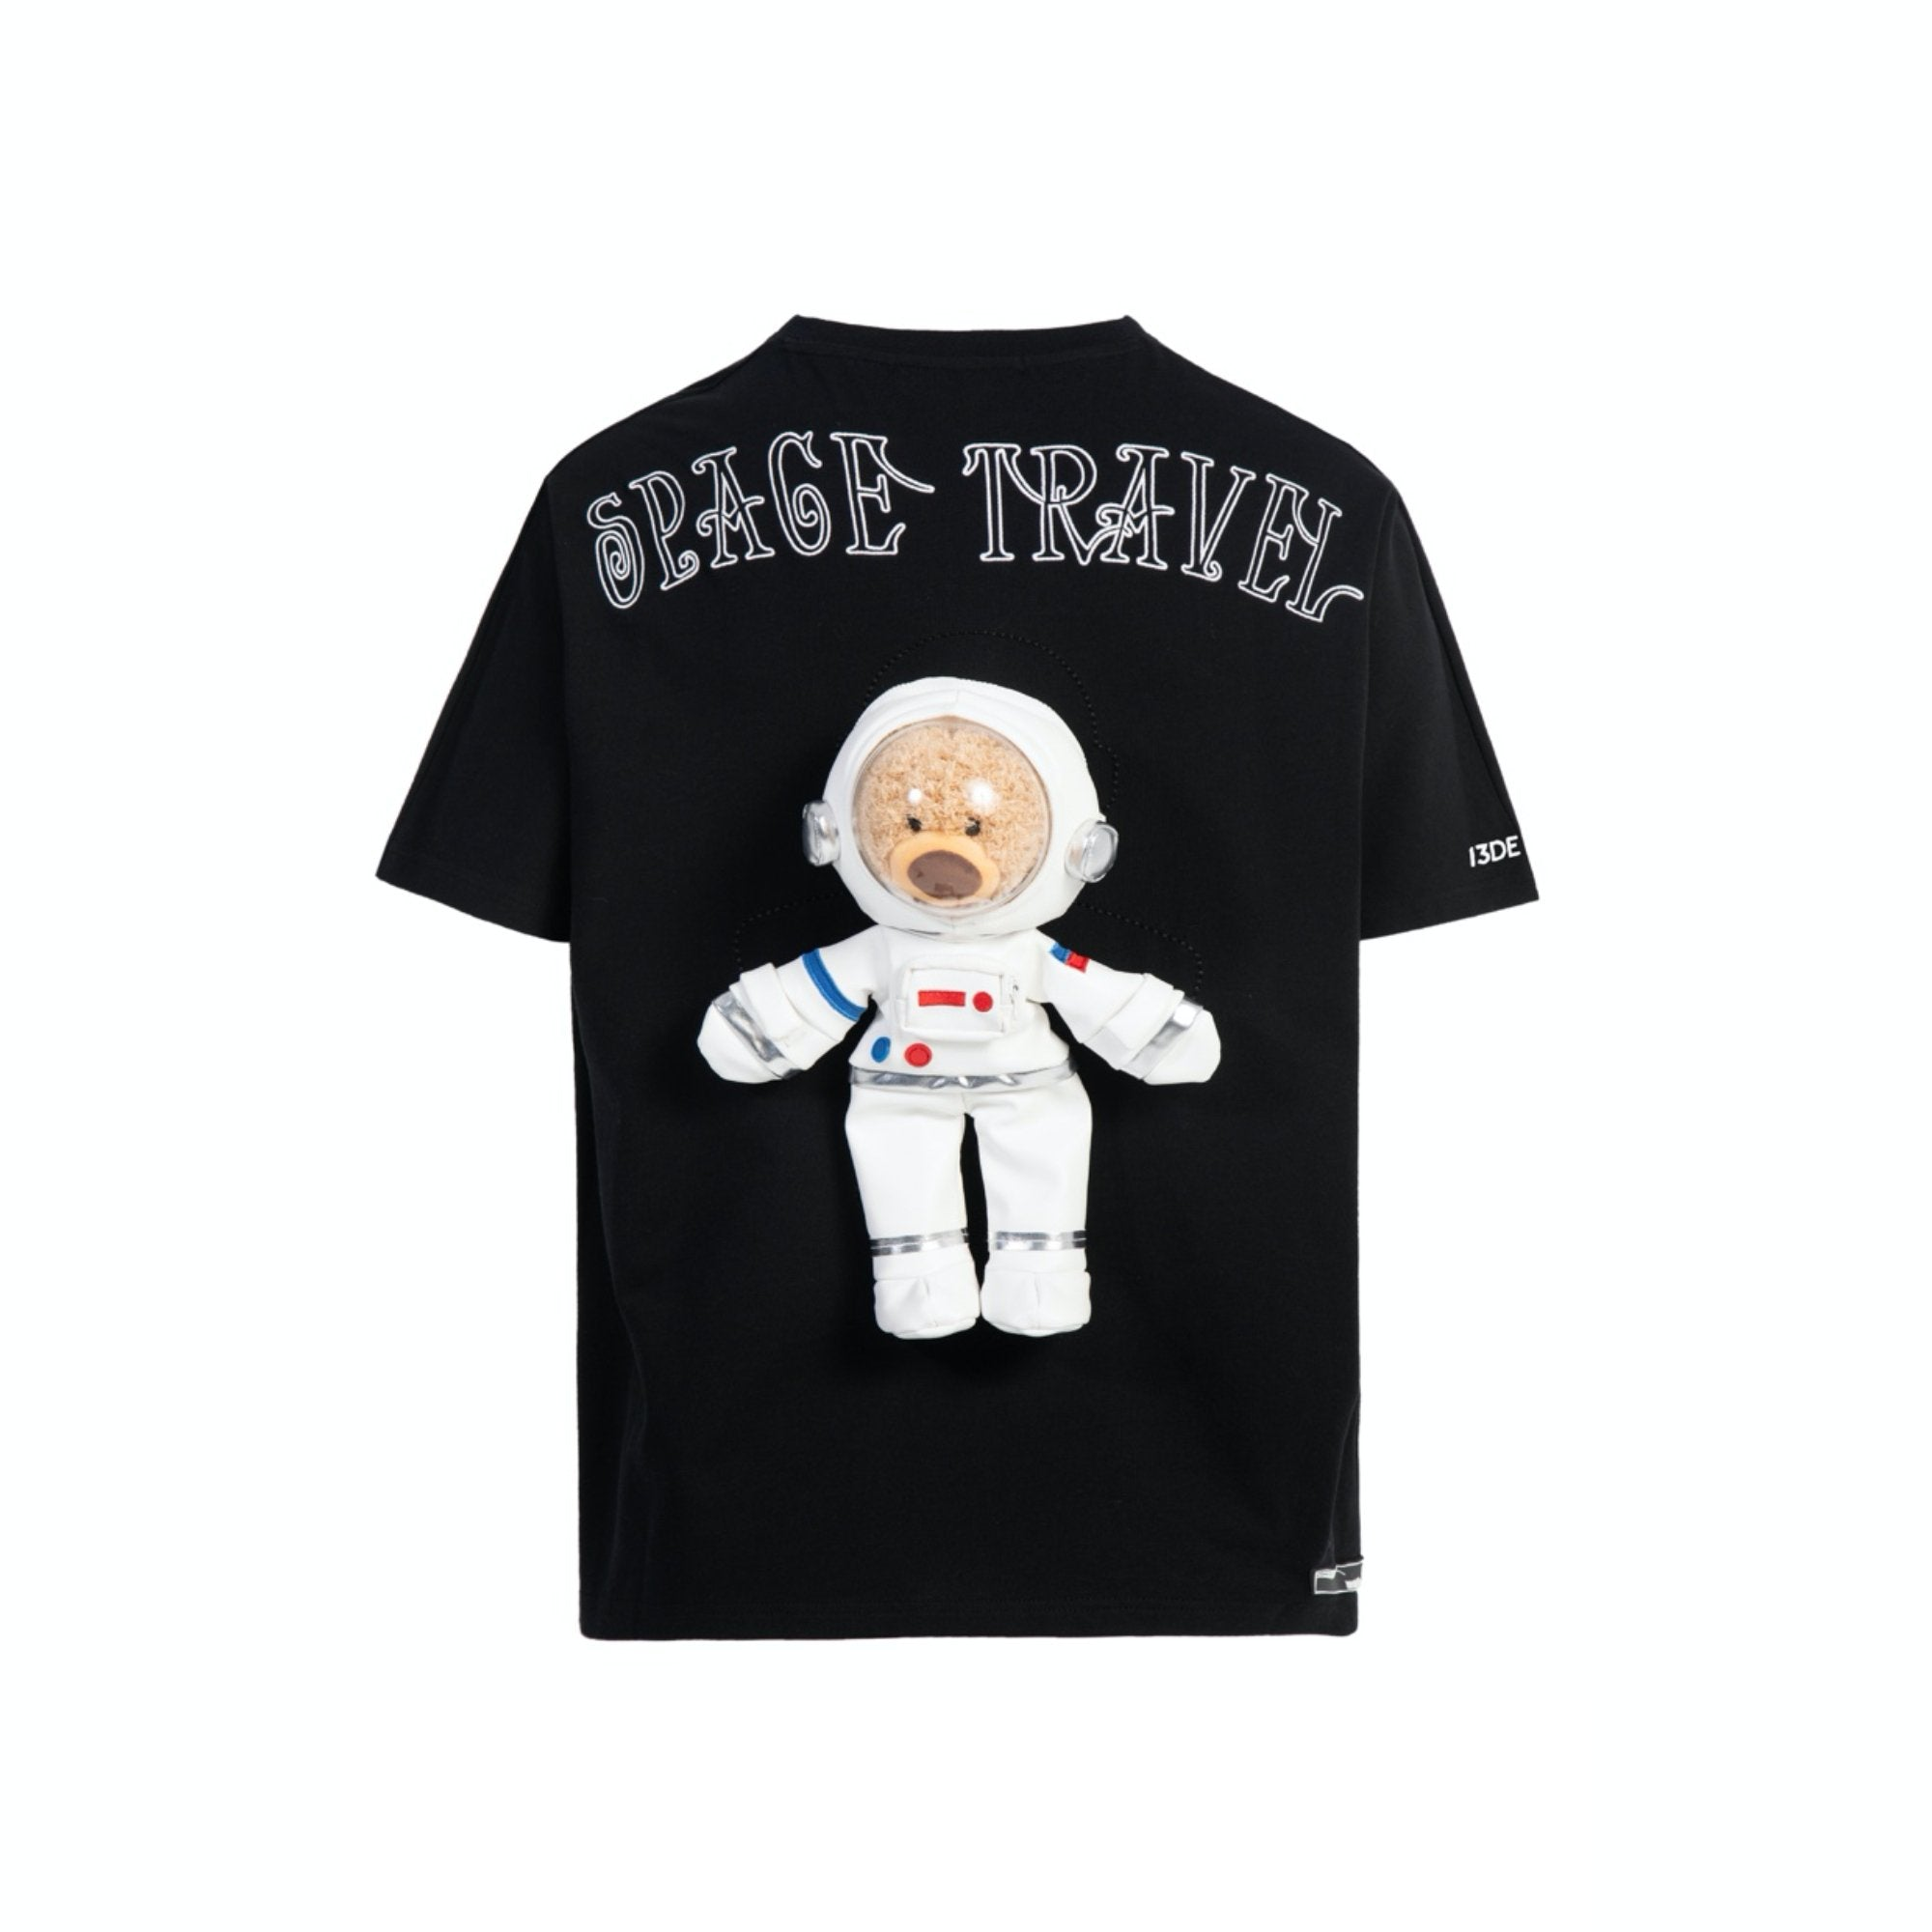 13 DE MARZO Astronaut Teddy Bear Tee Black | MADA IN CHINA